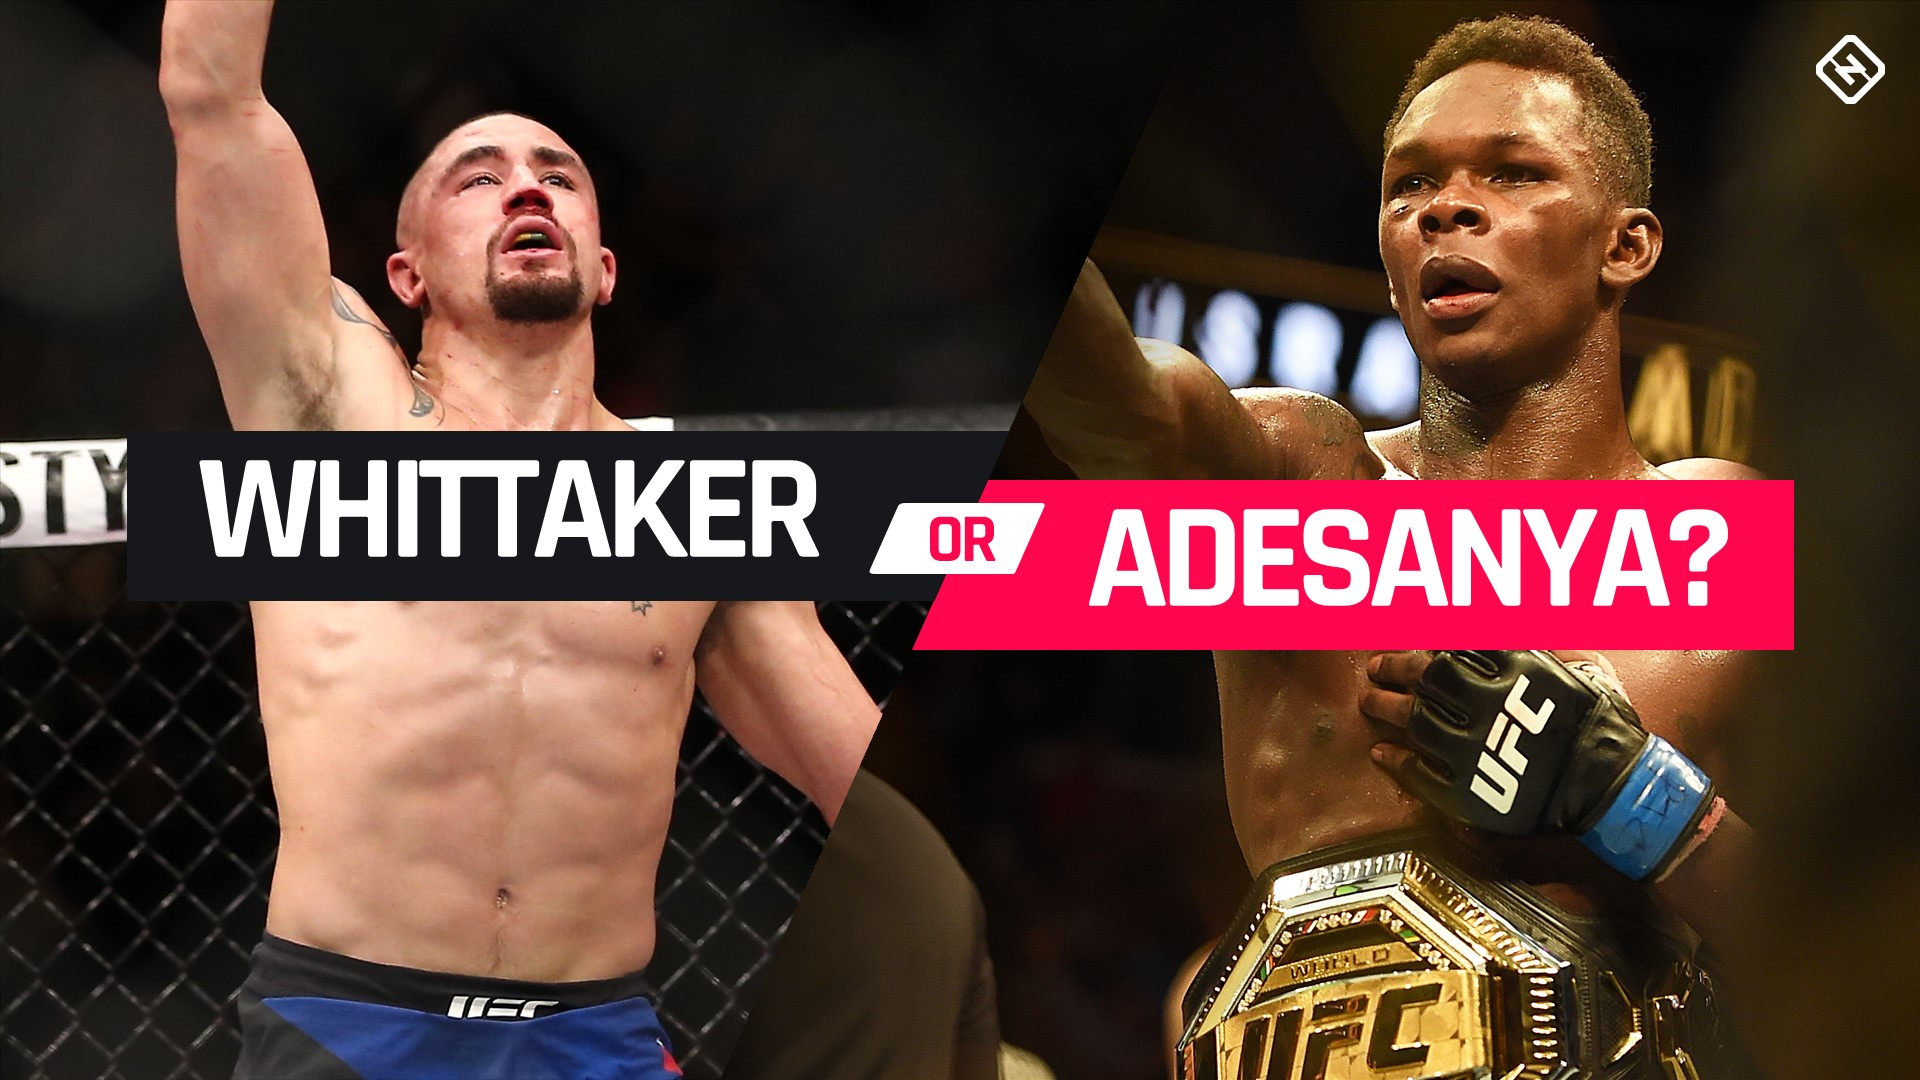 UFC 243 Whittaker vs Adesanya Complete Card Winning Odds